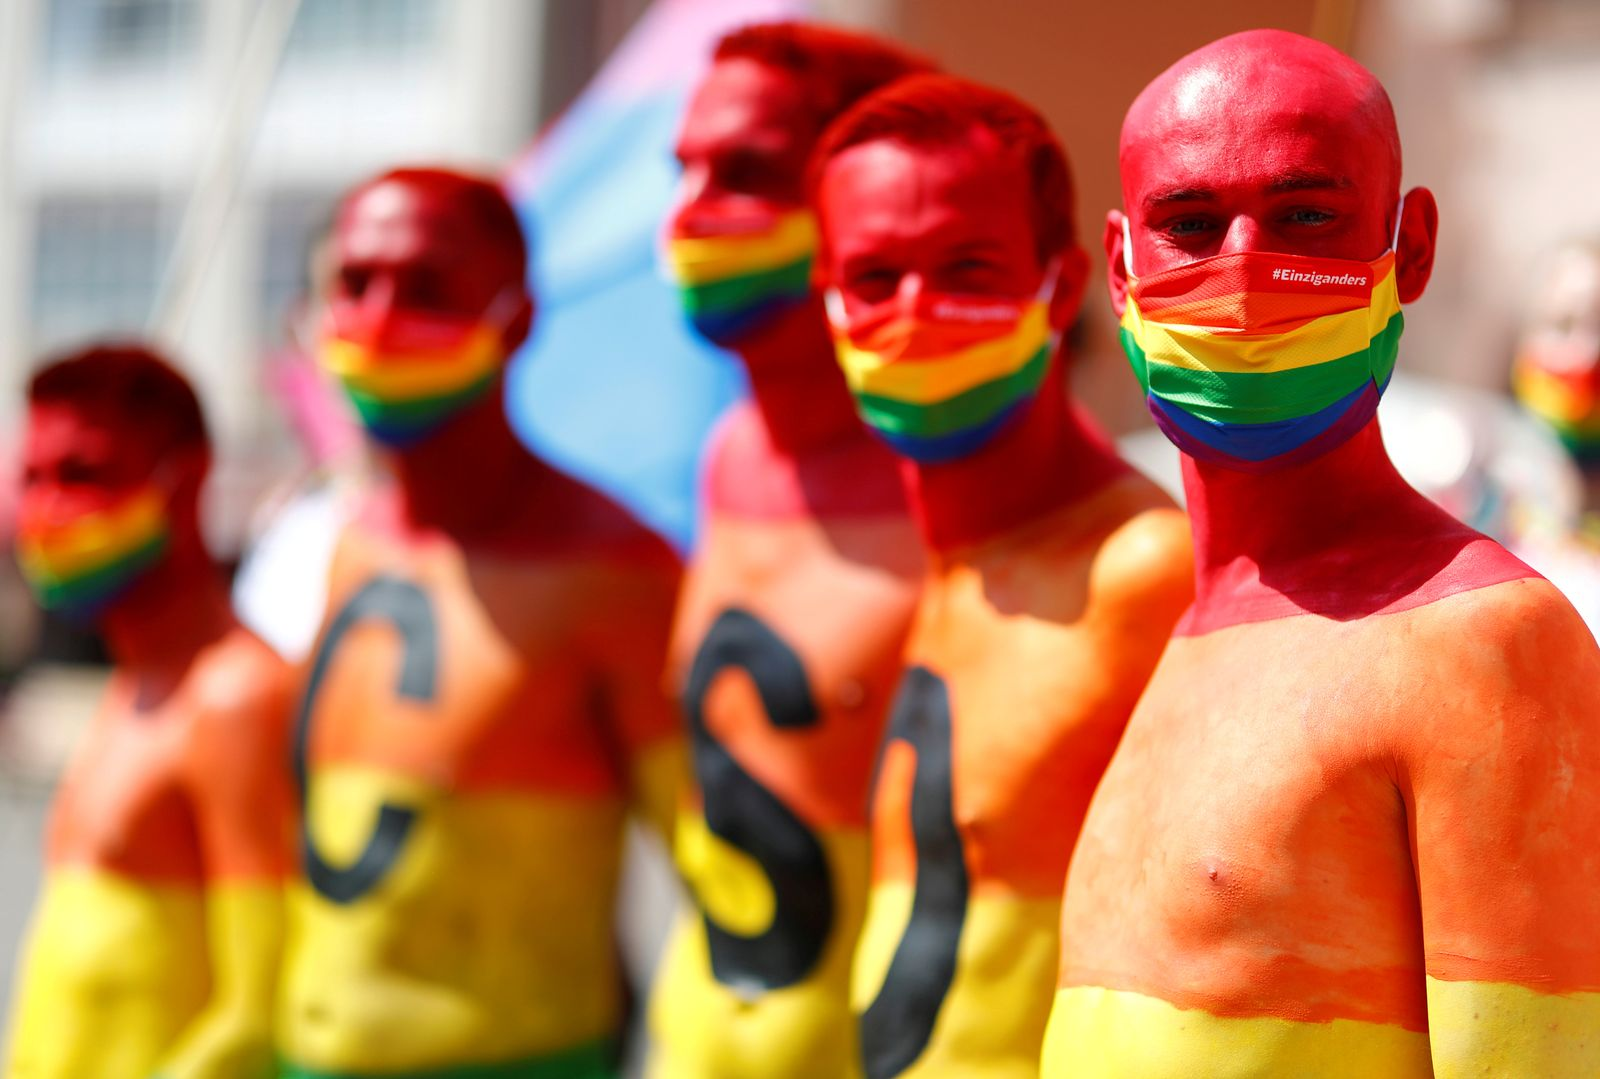 CSD parade under restrictions due to the outbreak of the coronavirus disease (COVID-19) in Frankfurt